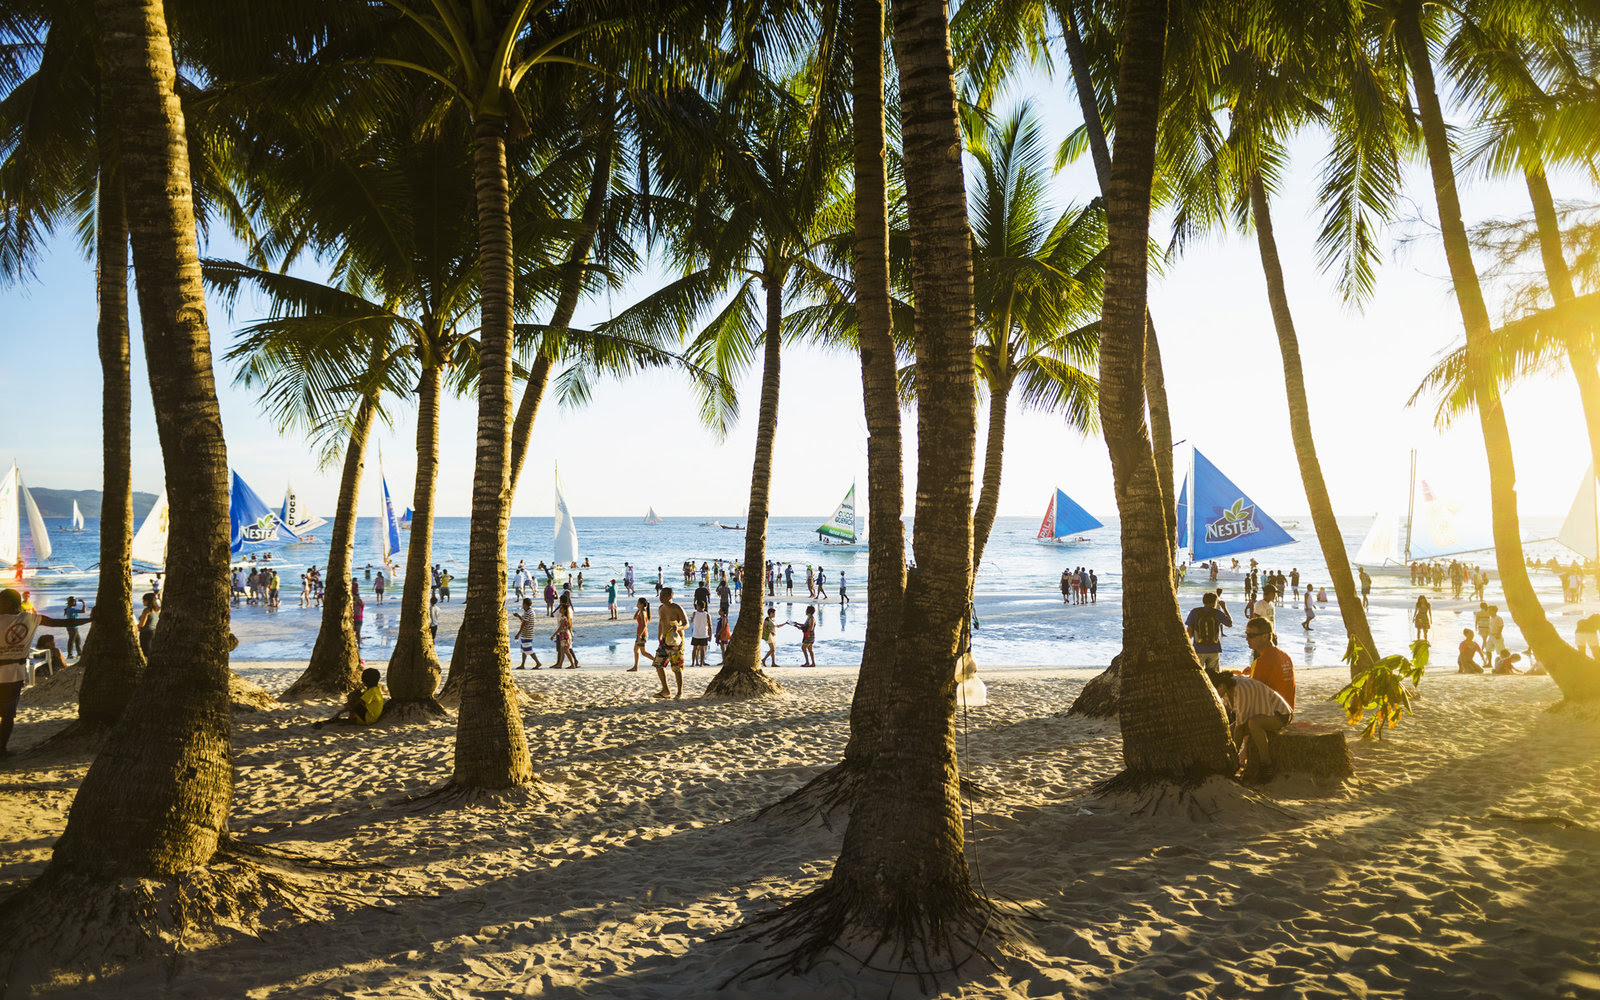 White Beach is often voted the best beach in Asia.